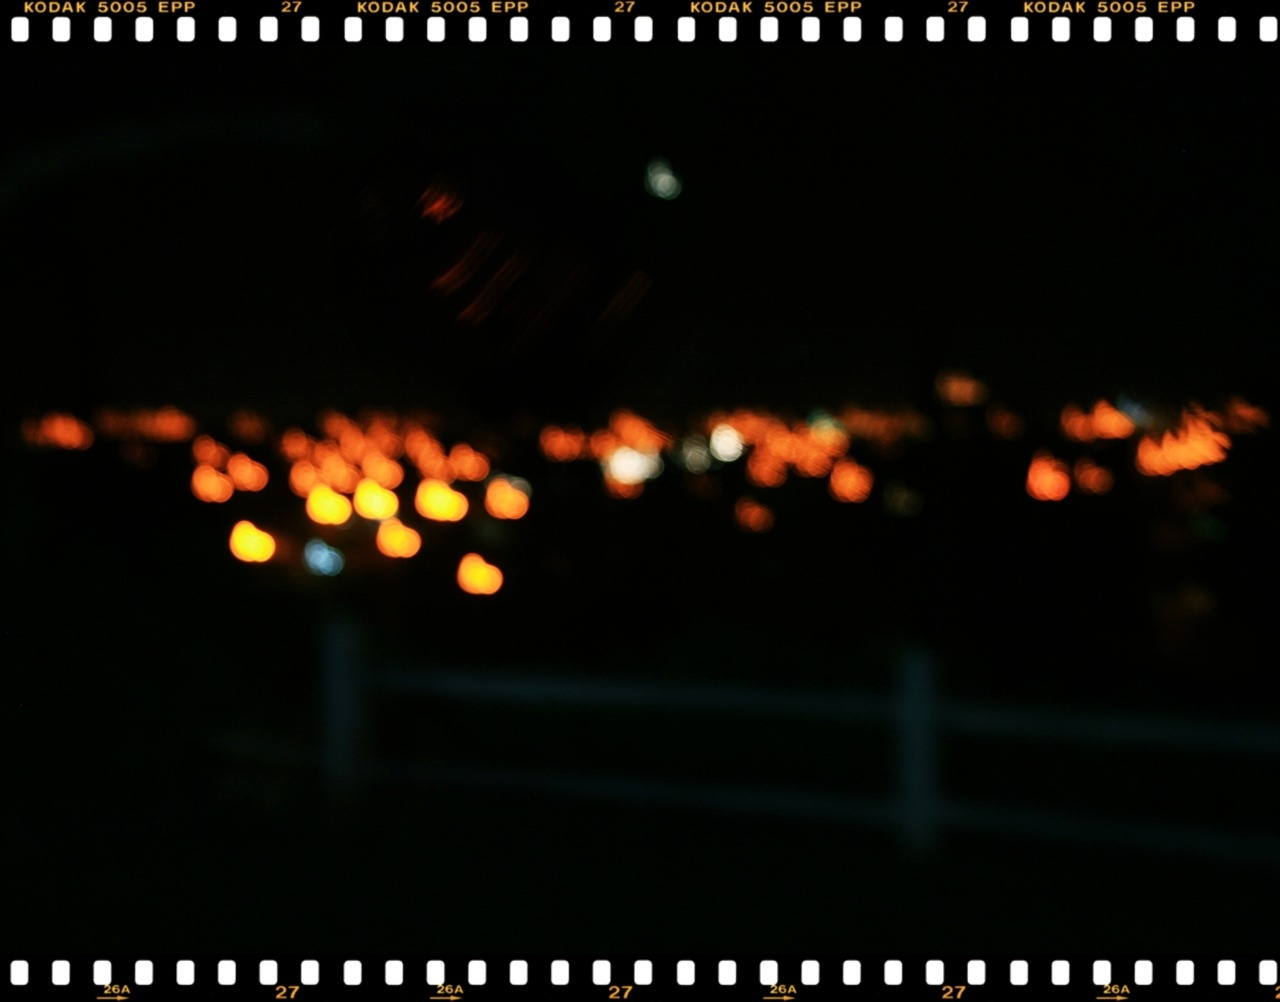 If only you could see it the way I see it.Street lights/city lights from mi casa.